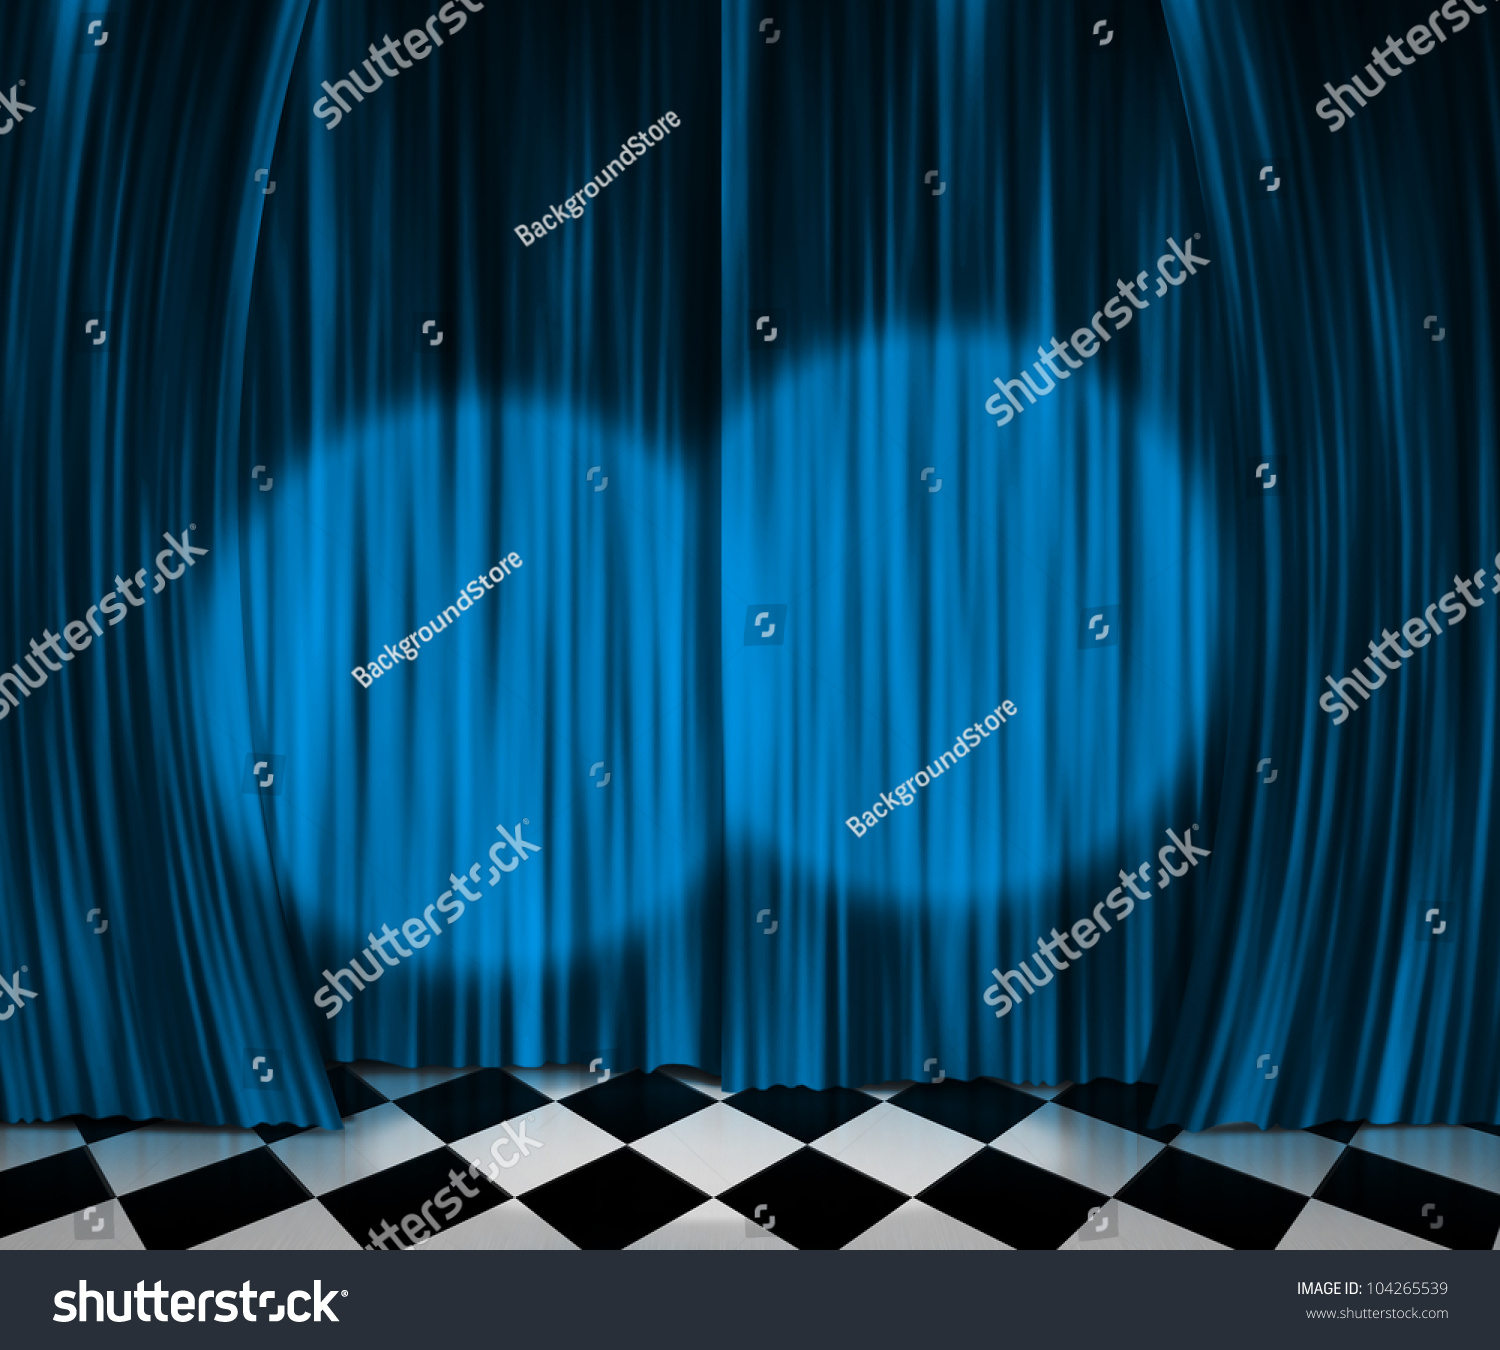 Bl blue stage curtains background -  Blue Curtain Spotlight Stage Background Download